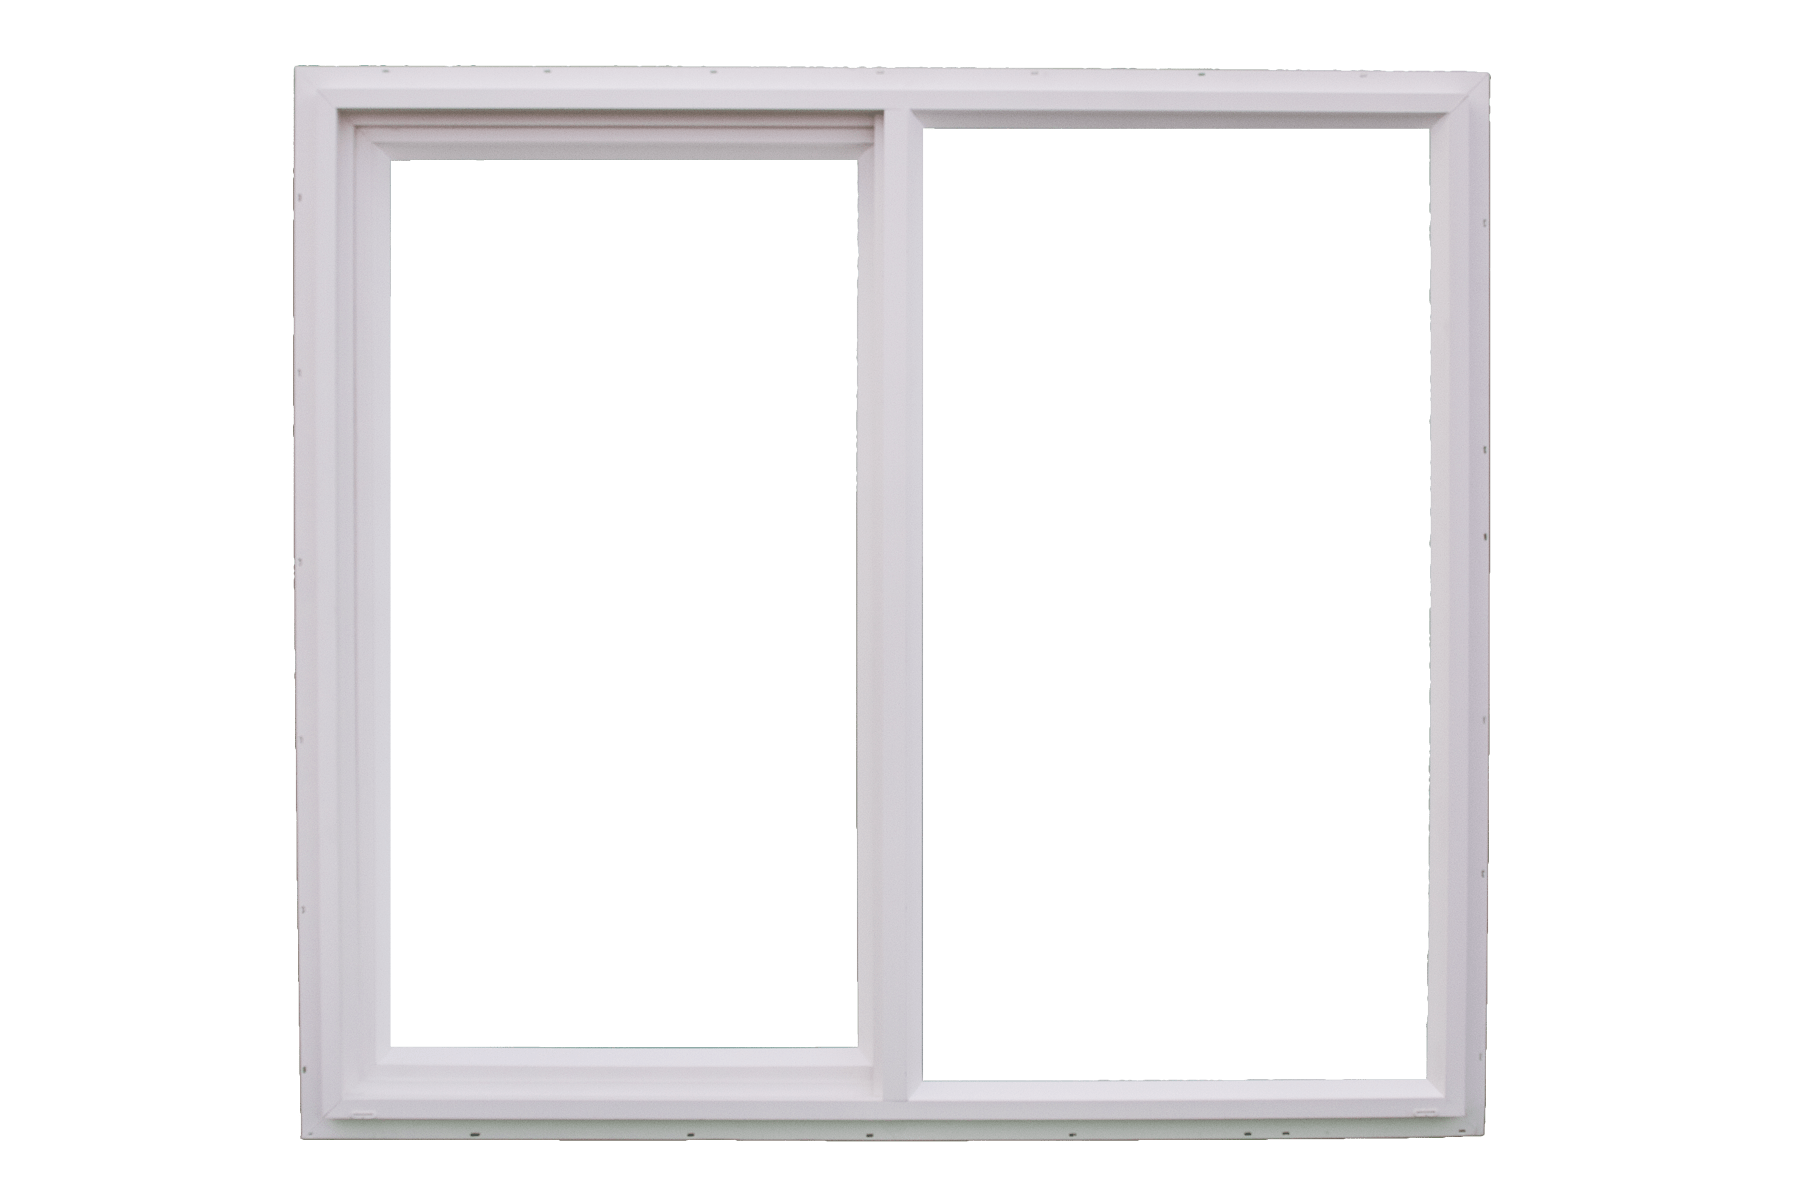 White Window transparent PNG.